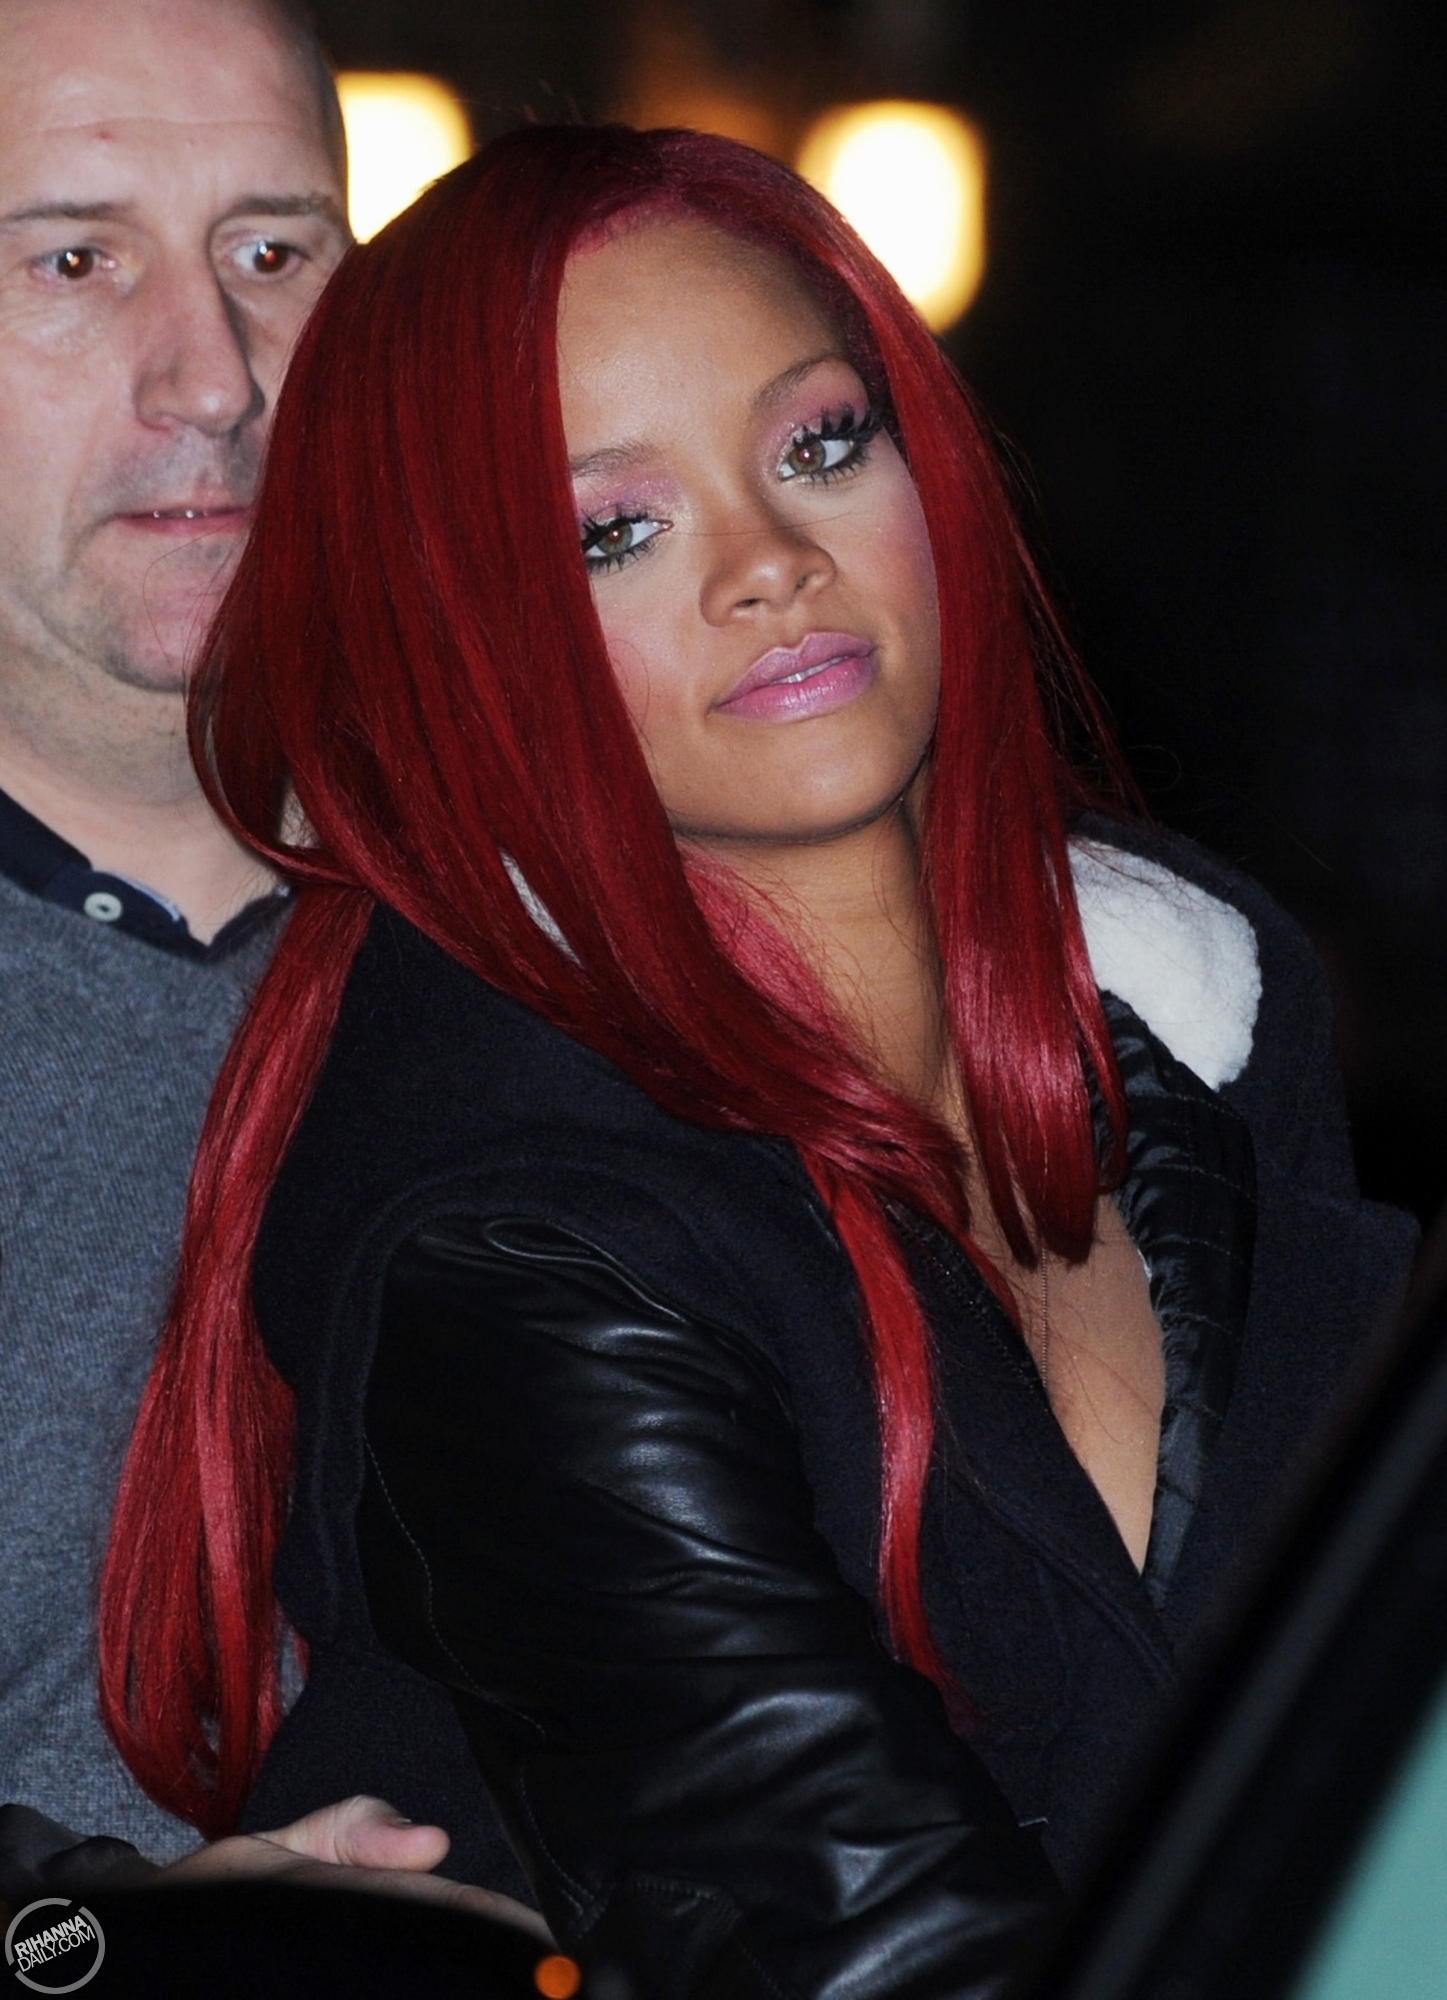 http://images4.fanpop.com/image/photos/17000000/Rihanna-leaving-Ed-Sullivan-Theater-and-heading-to-her-hotel-in-NYC-11-16-10-rihanna-17069663-1447-2000.jpg